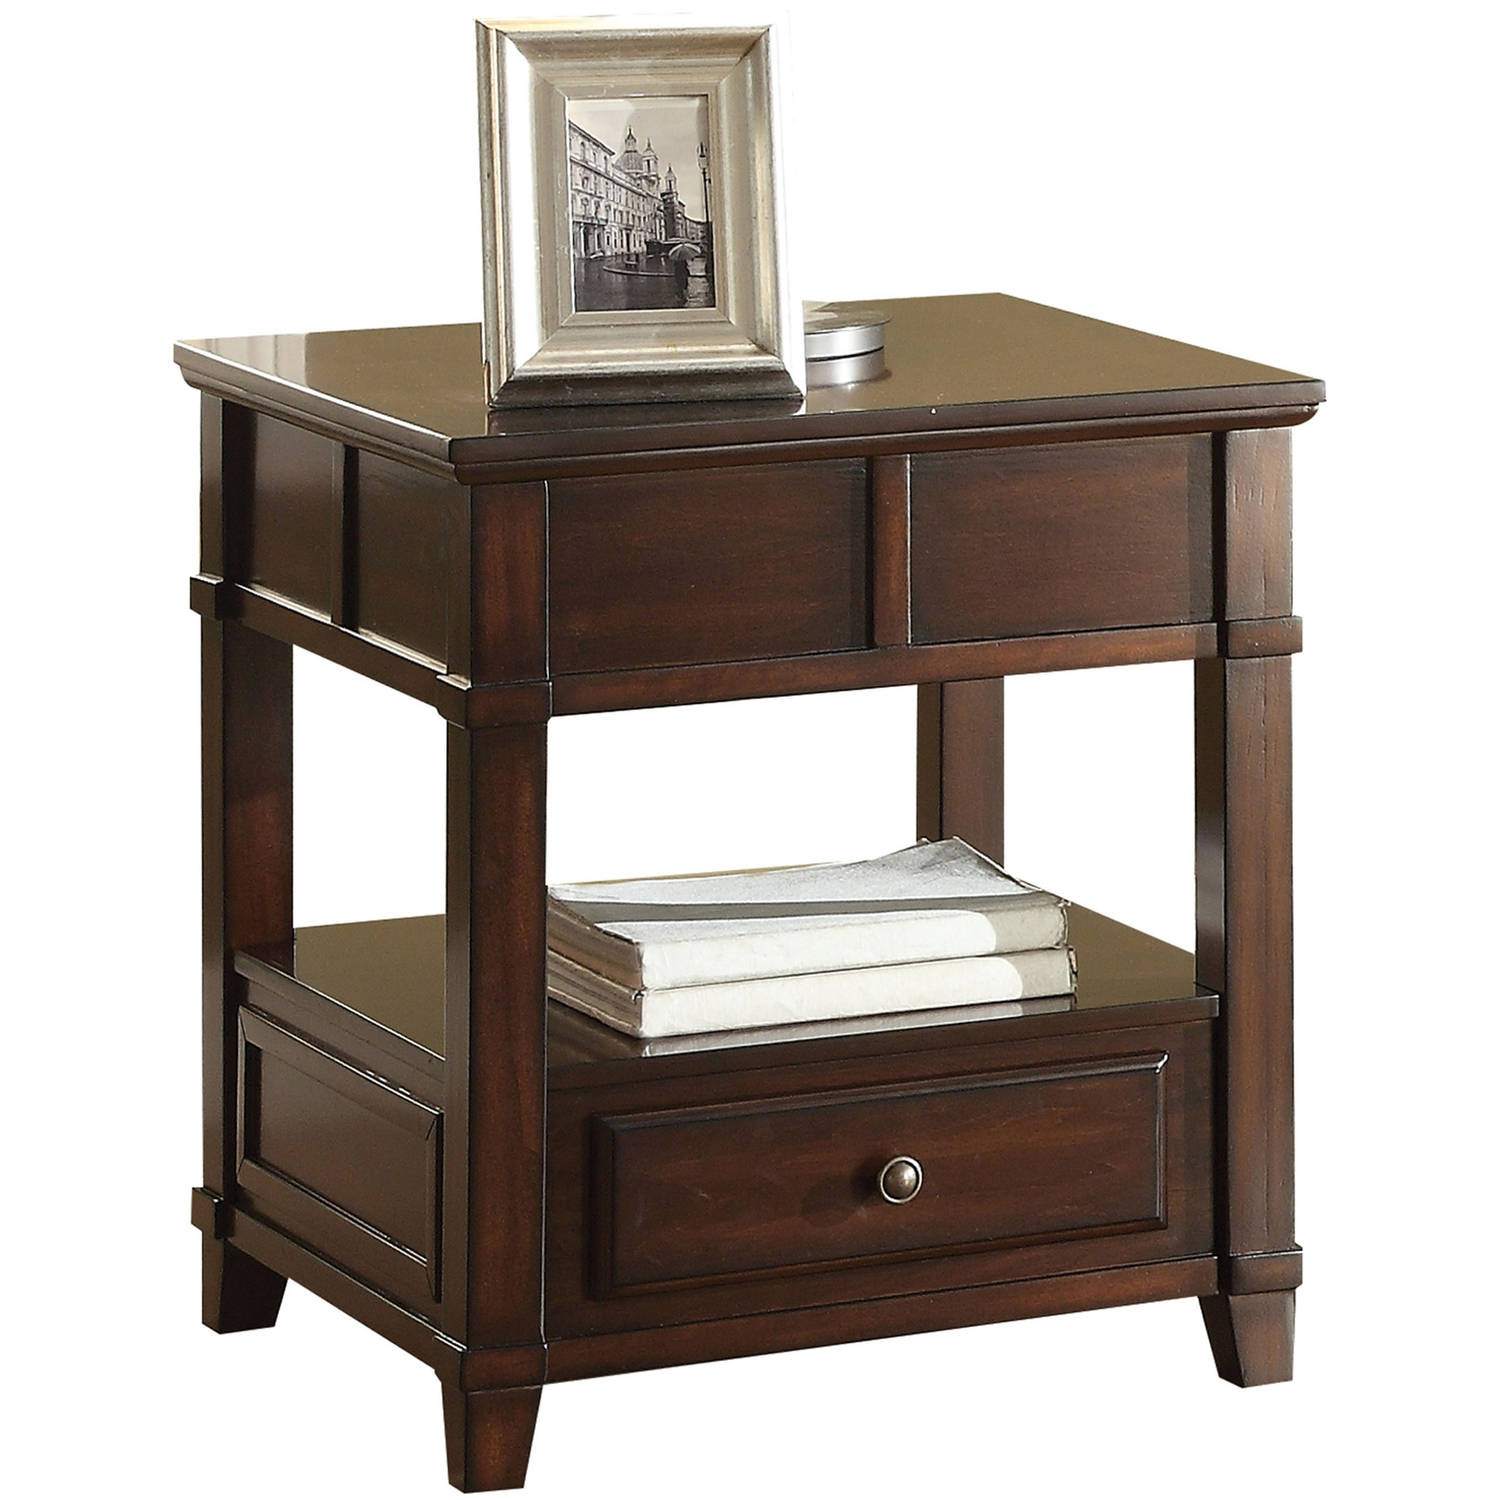 ACME Orville End Table, Walnut